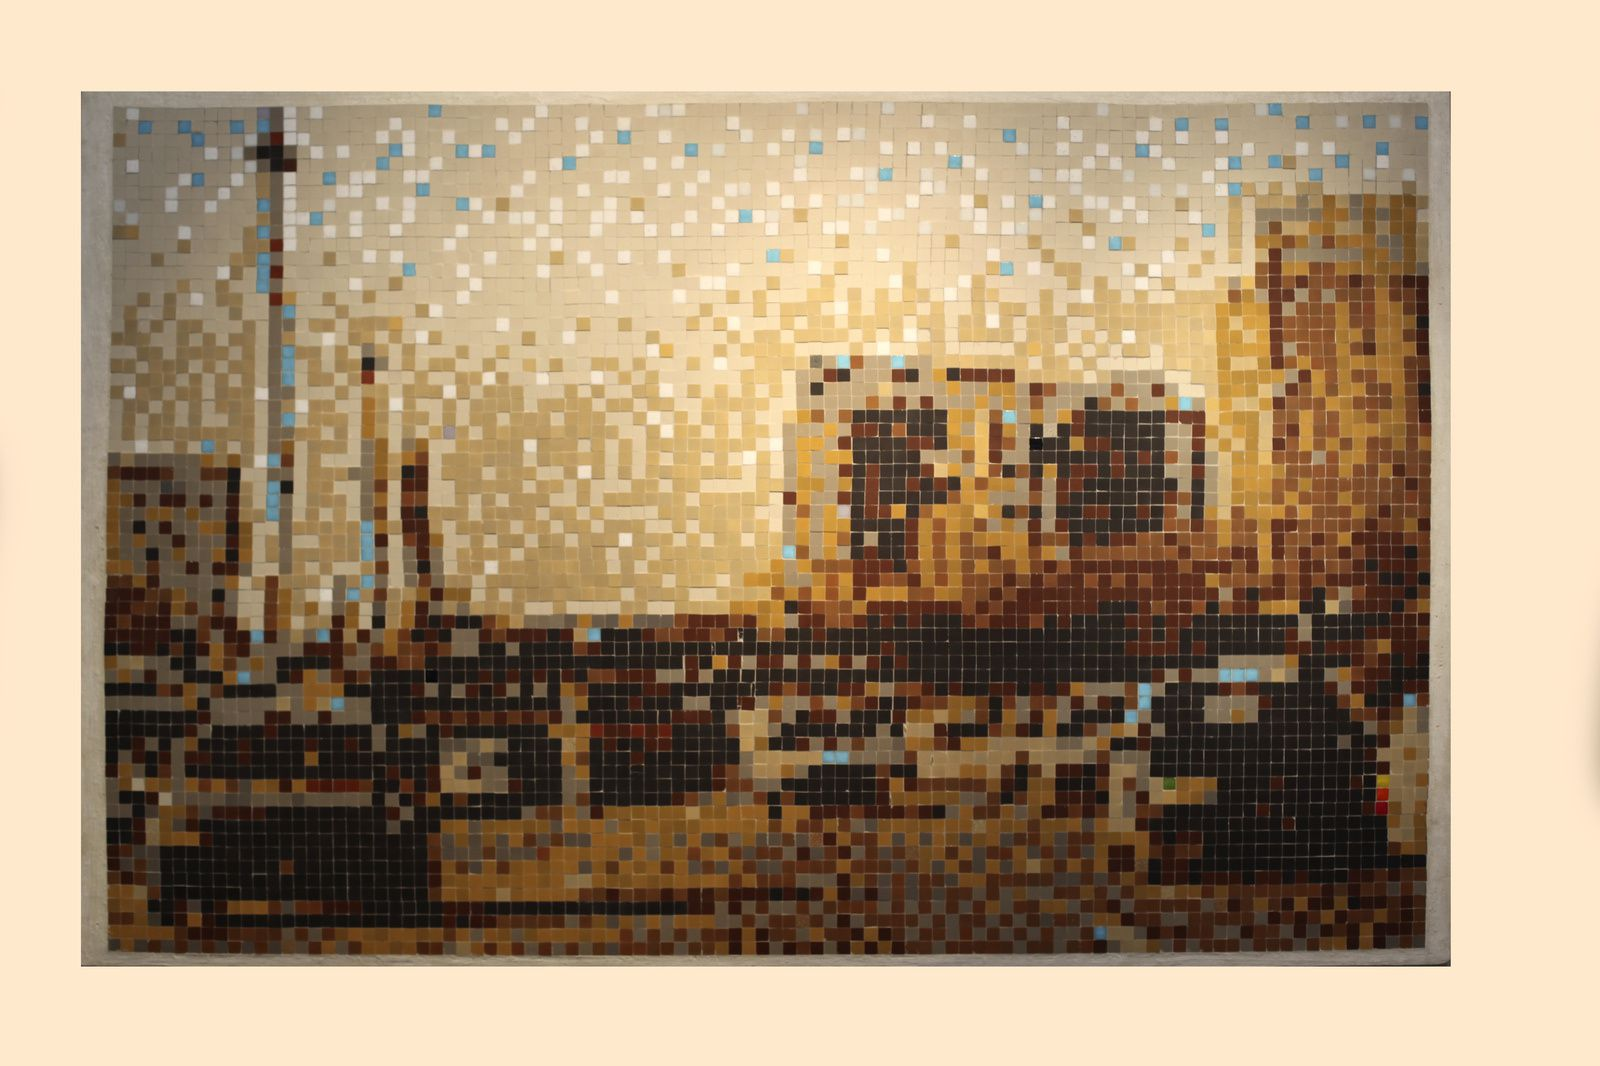 """La route"", 1997 de INVADER - Courtesy Galerie LE FEUVRE © Photo Éric Simon"